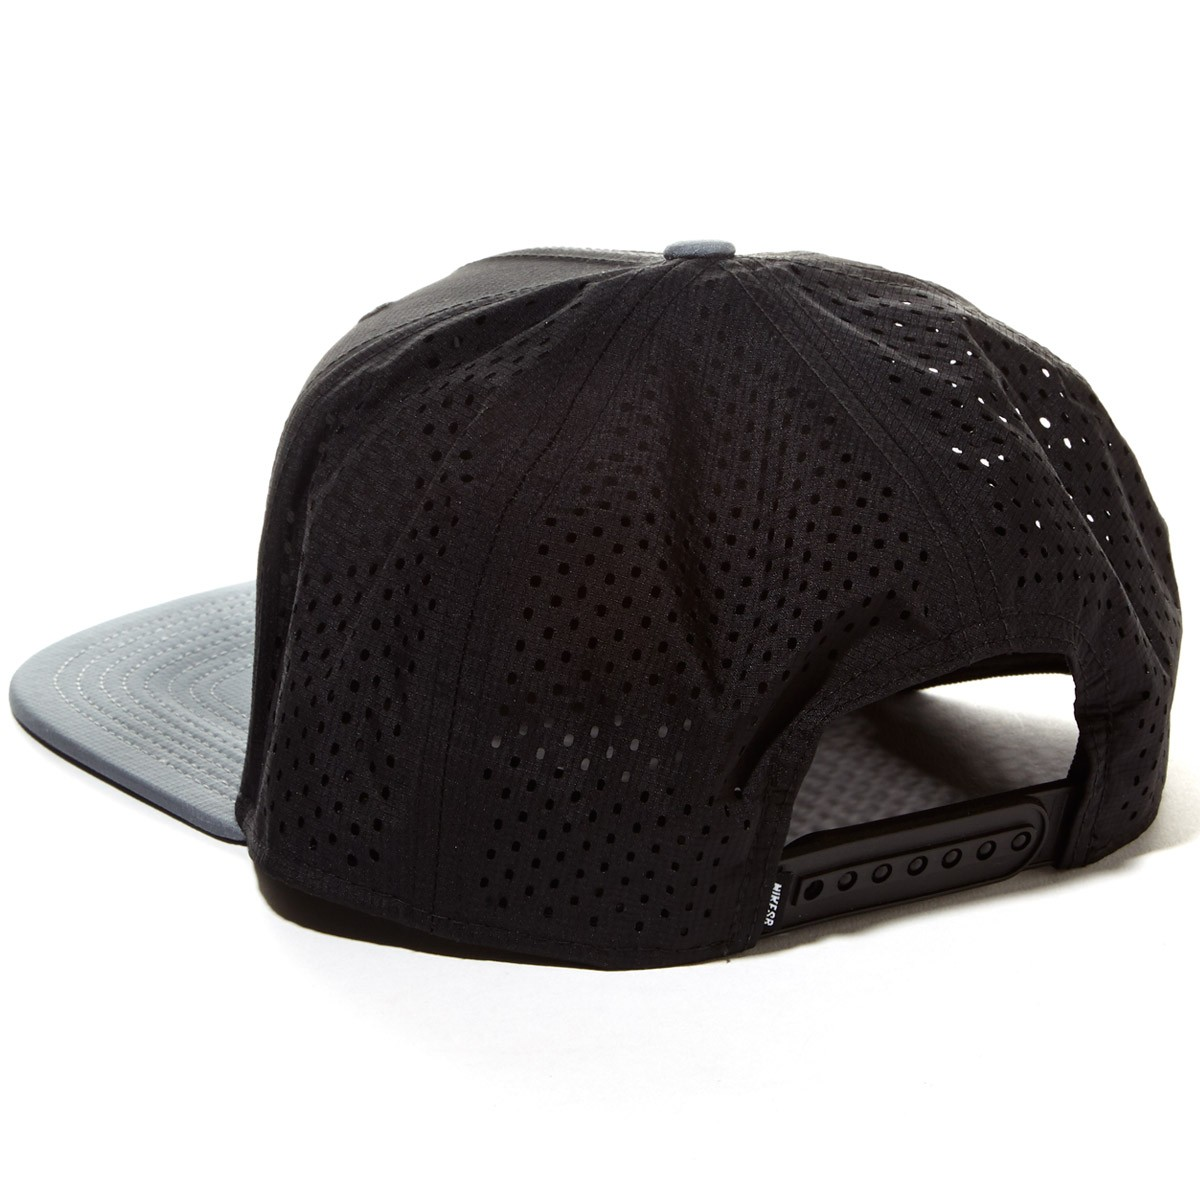 b0eec824ff Nike SB Performance Hat - Black Grey Black